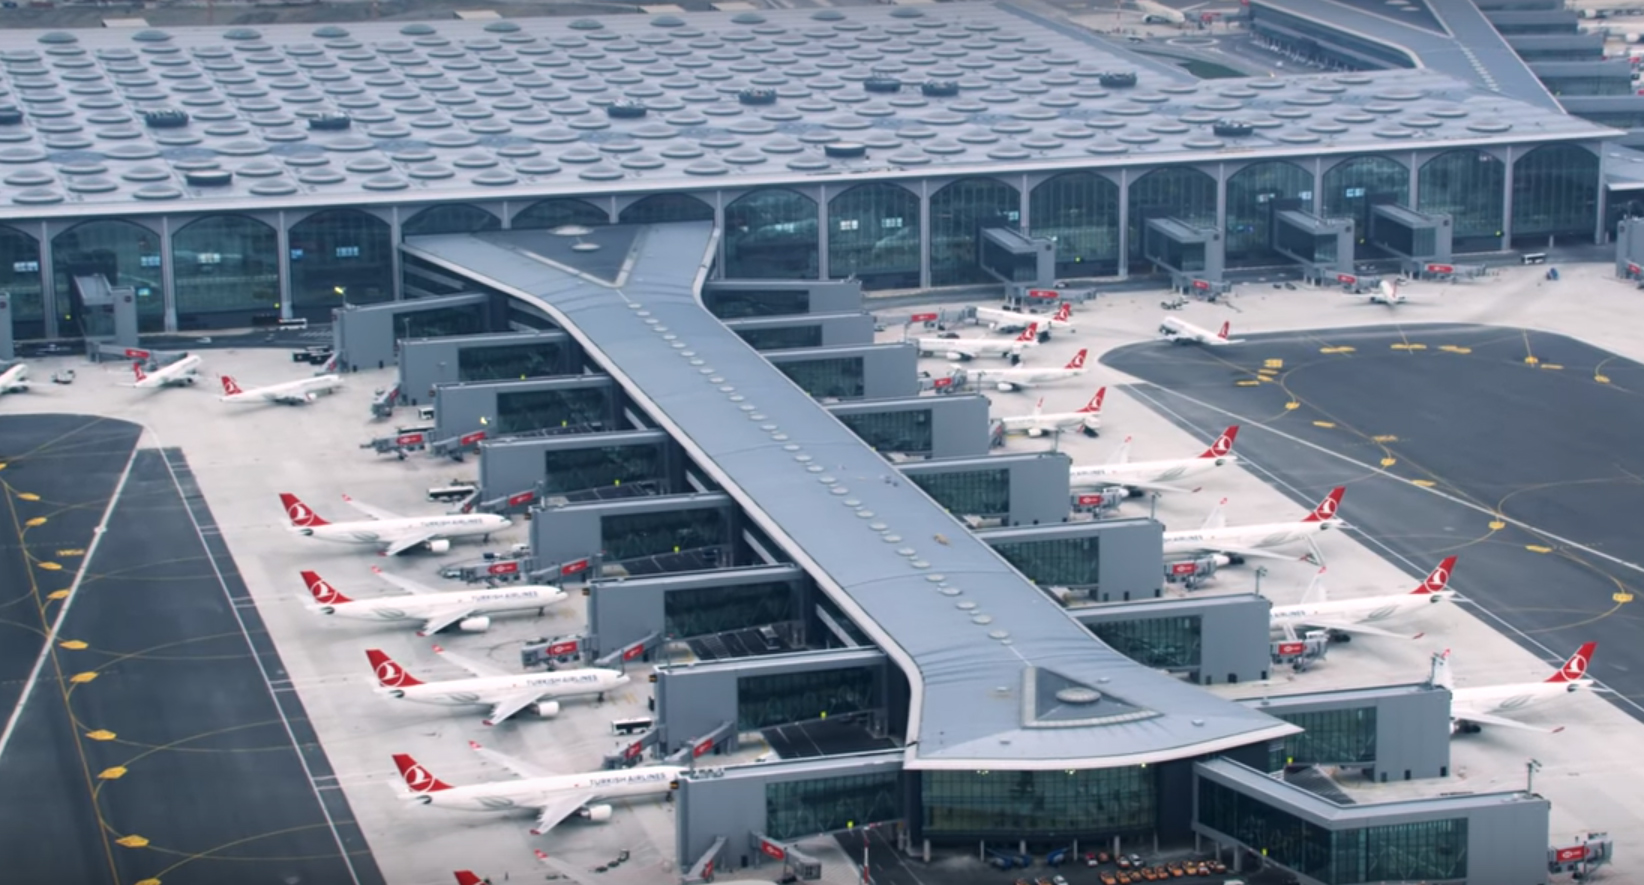 Istanbul airport grounds flights as Turkey's death toll exceeds 100